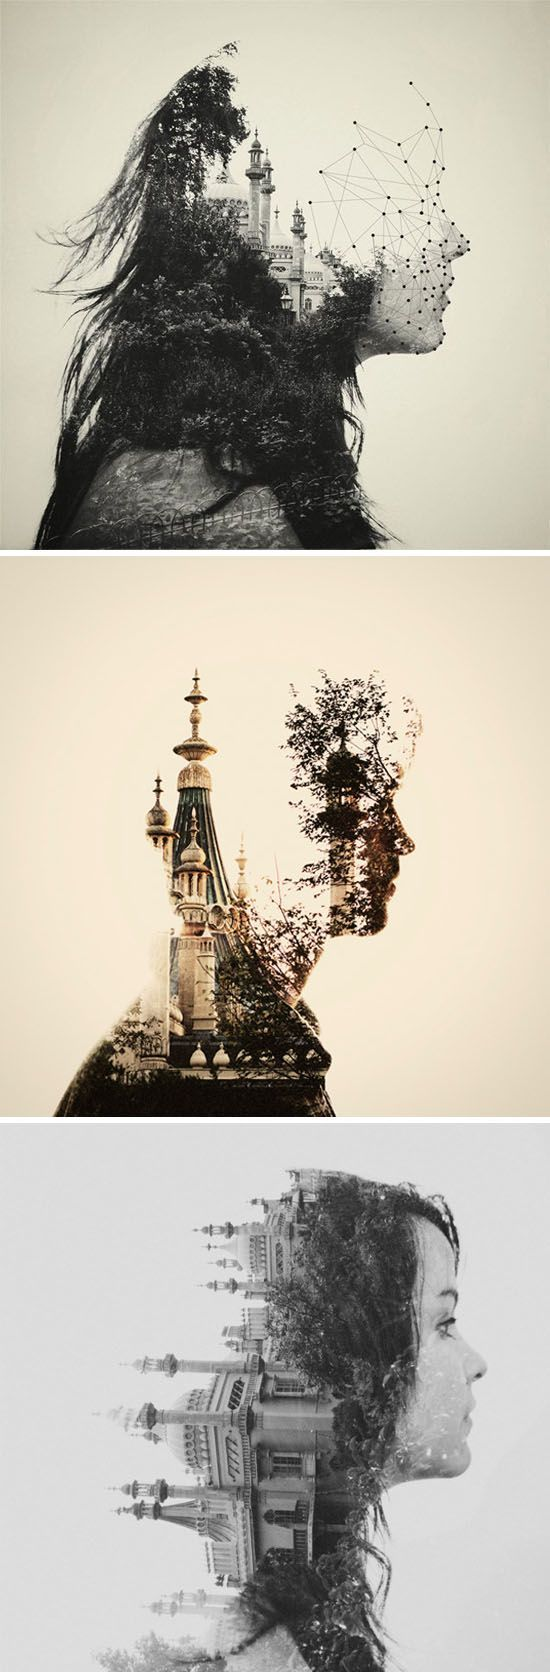 The first and third are cliche but the second is good. This is not particularly an interesting concept to me, but it's ok. dan mountford, double exposure portraits